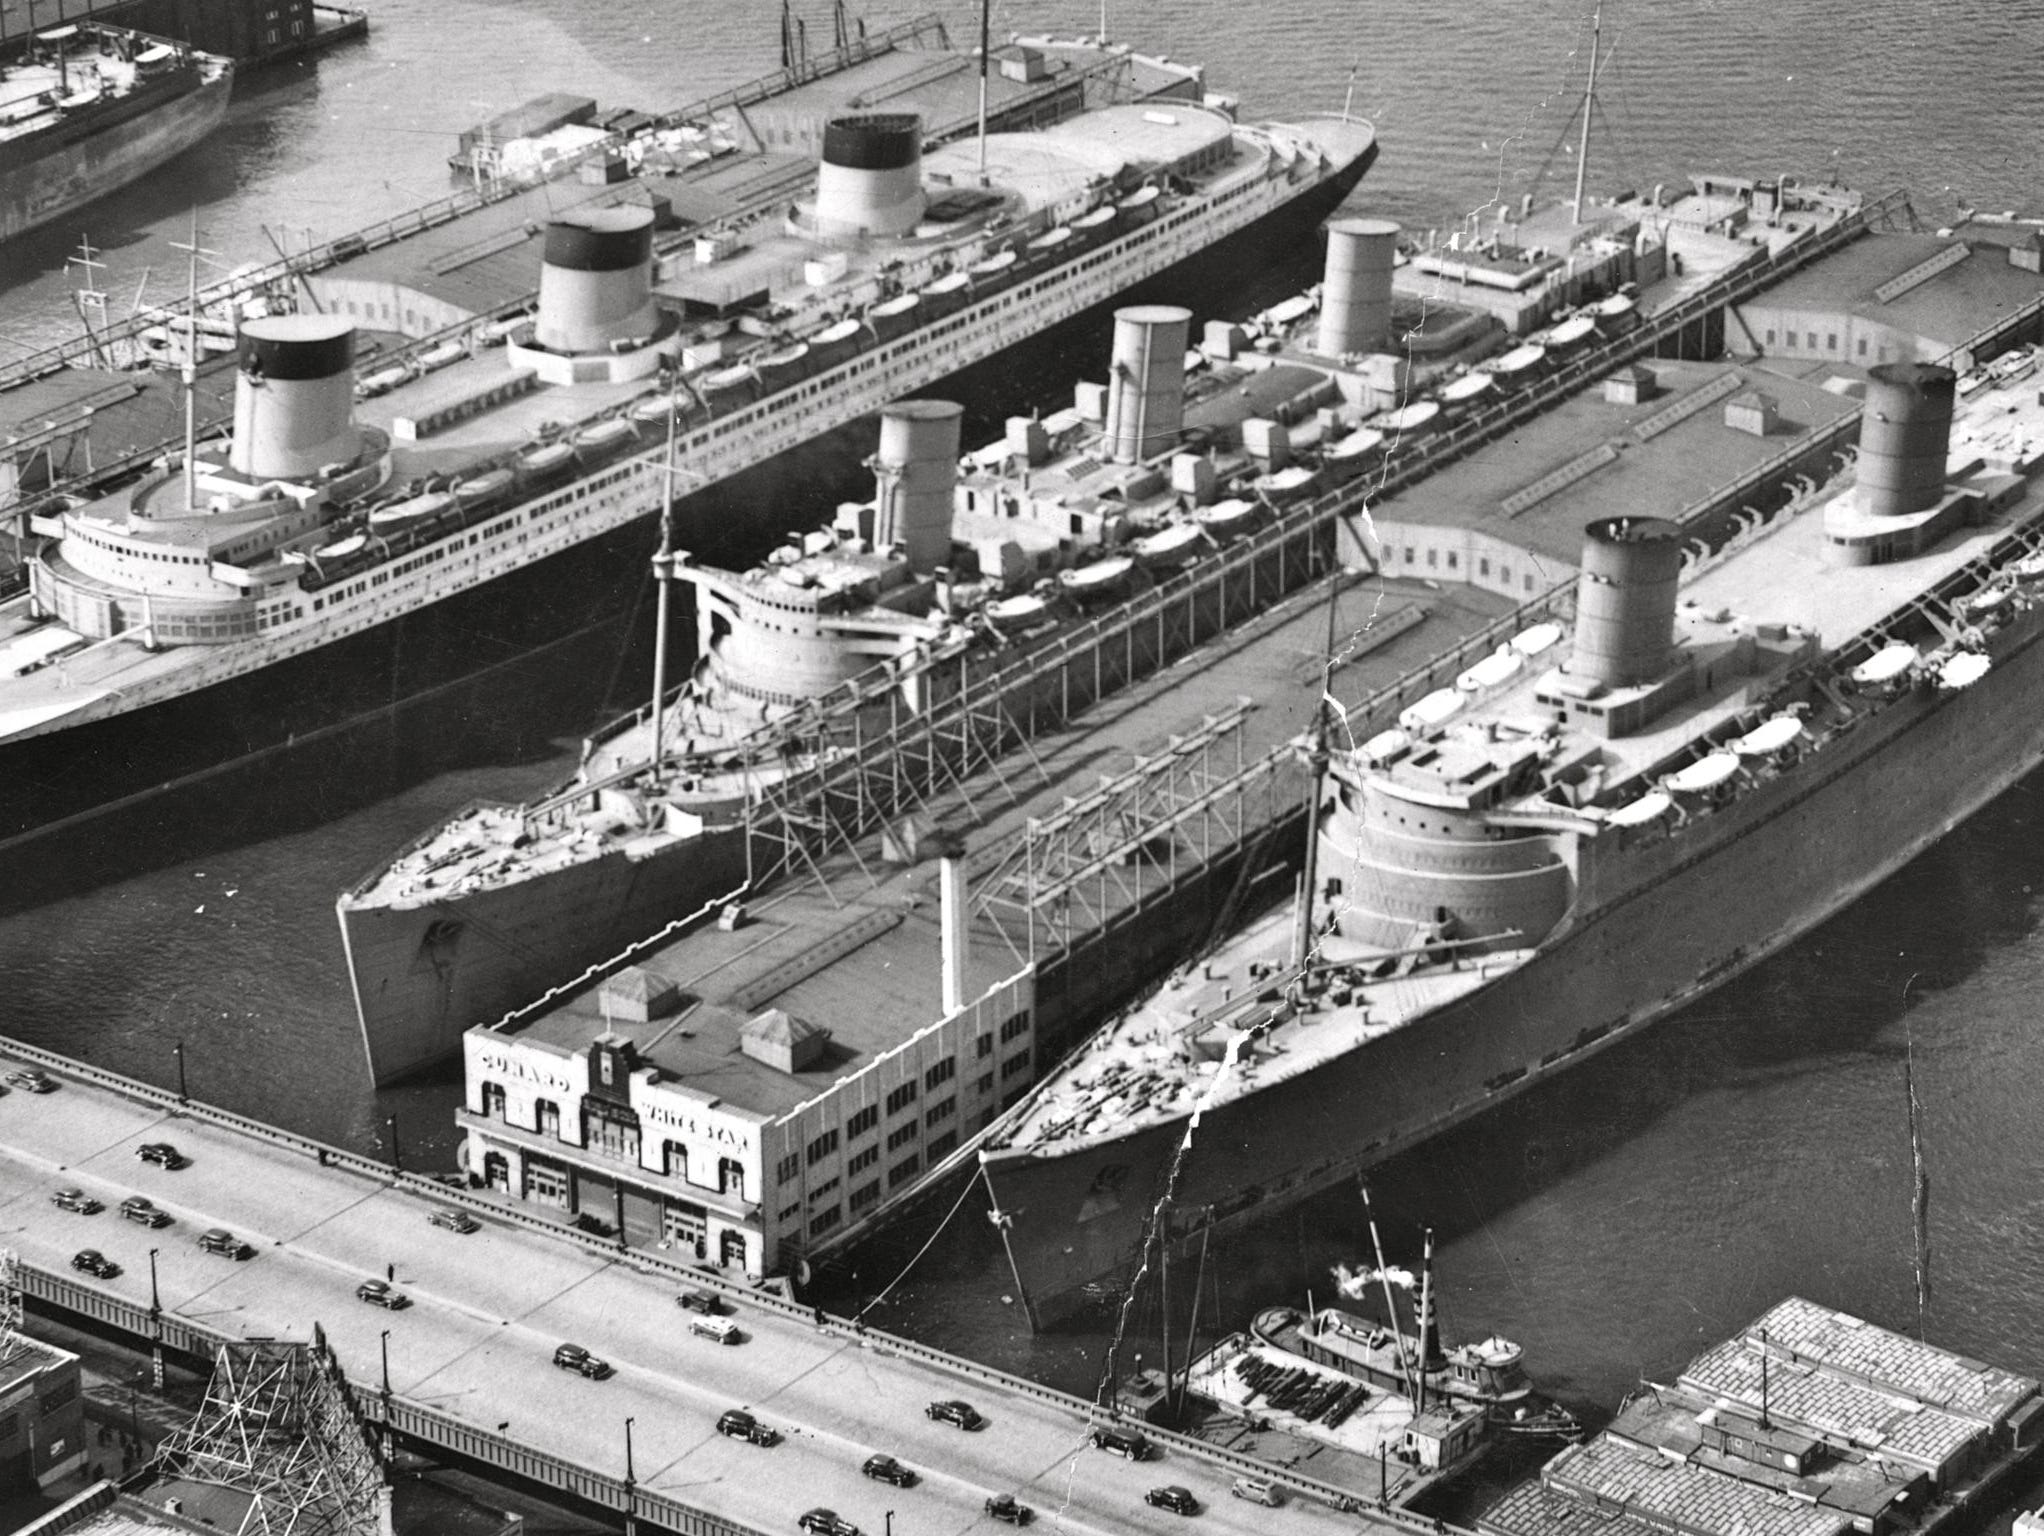 In September 1939, with the outbreak of war in Europe, the Queen Mary was laid up at New York along with the Normandie (left). In March of 1940, they were joined by the brand new Queen Elizabeth (right) for the only gathering of the world's first 'thousand footers.' All were slated for Allied trooping duties but the Normandie was tragically destroyed by fire in 1942.